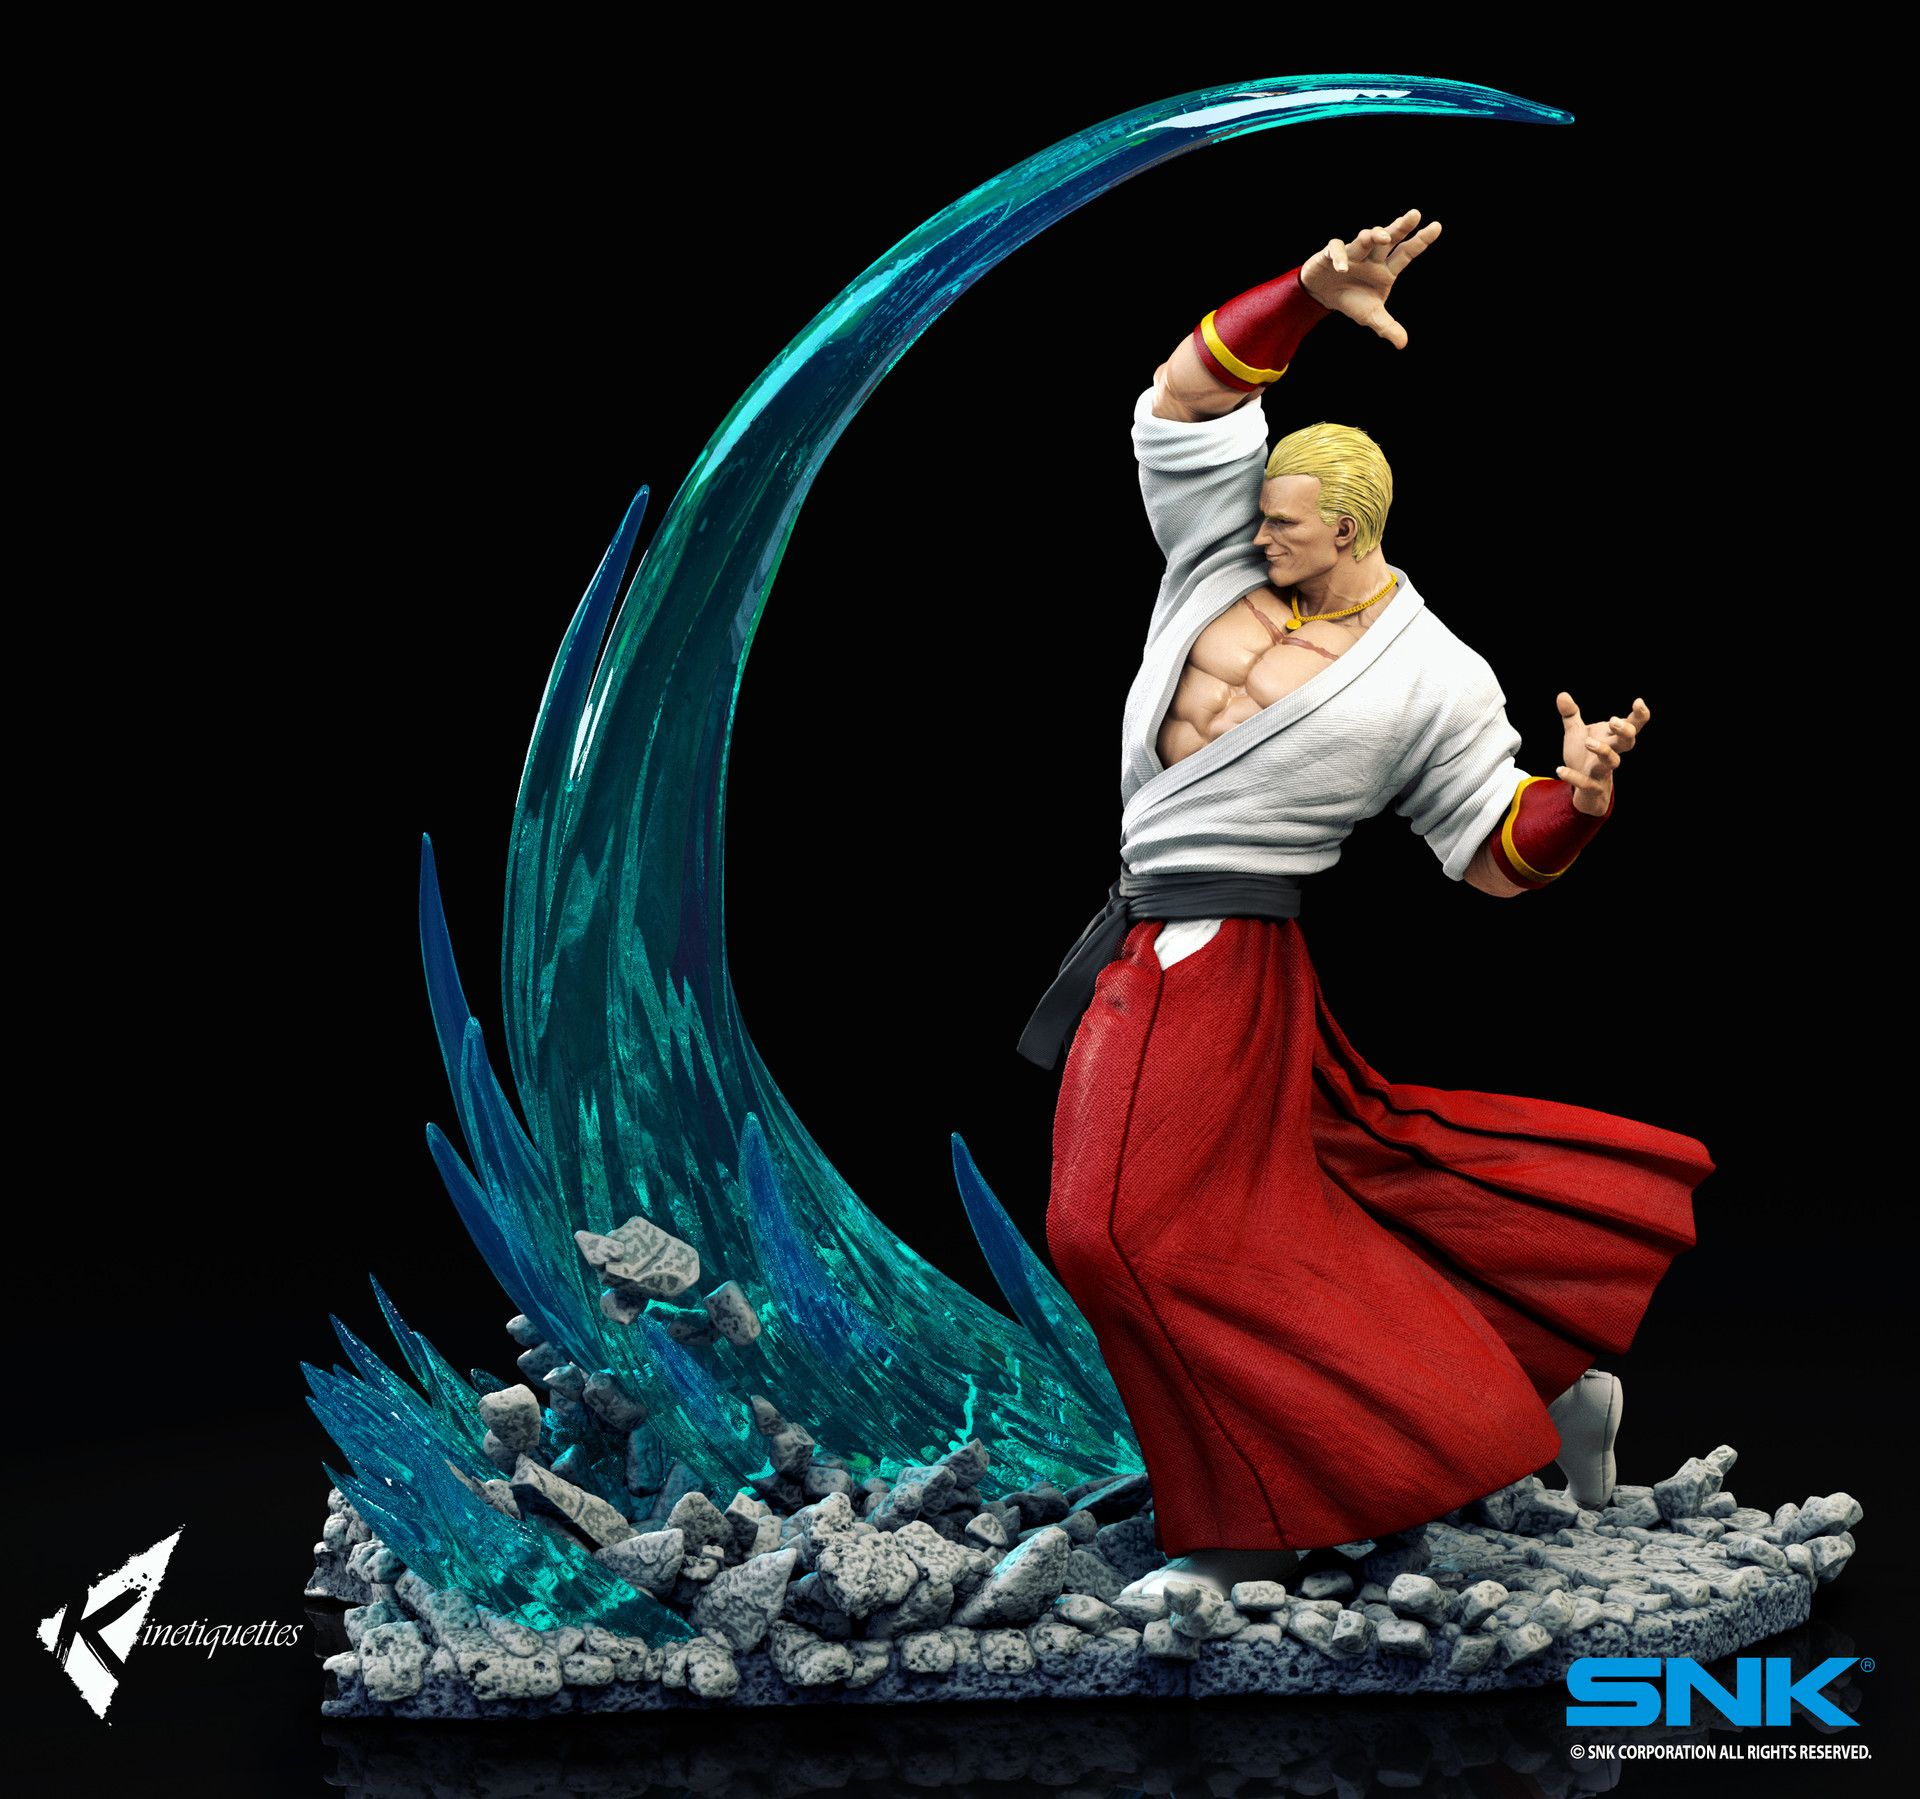 Artstation Geese Howard Teaser Kinetiquettes Rodrigue Pralier King Of Fighters Goose Fighter Mark of the wolves and the king of fighters series. pinterest